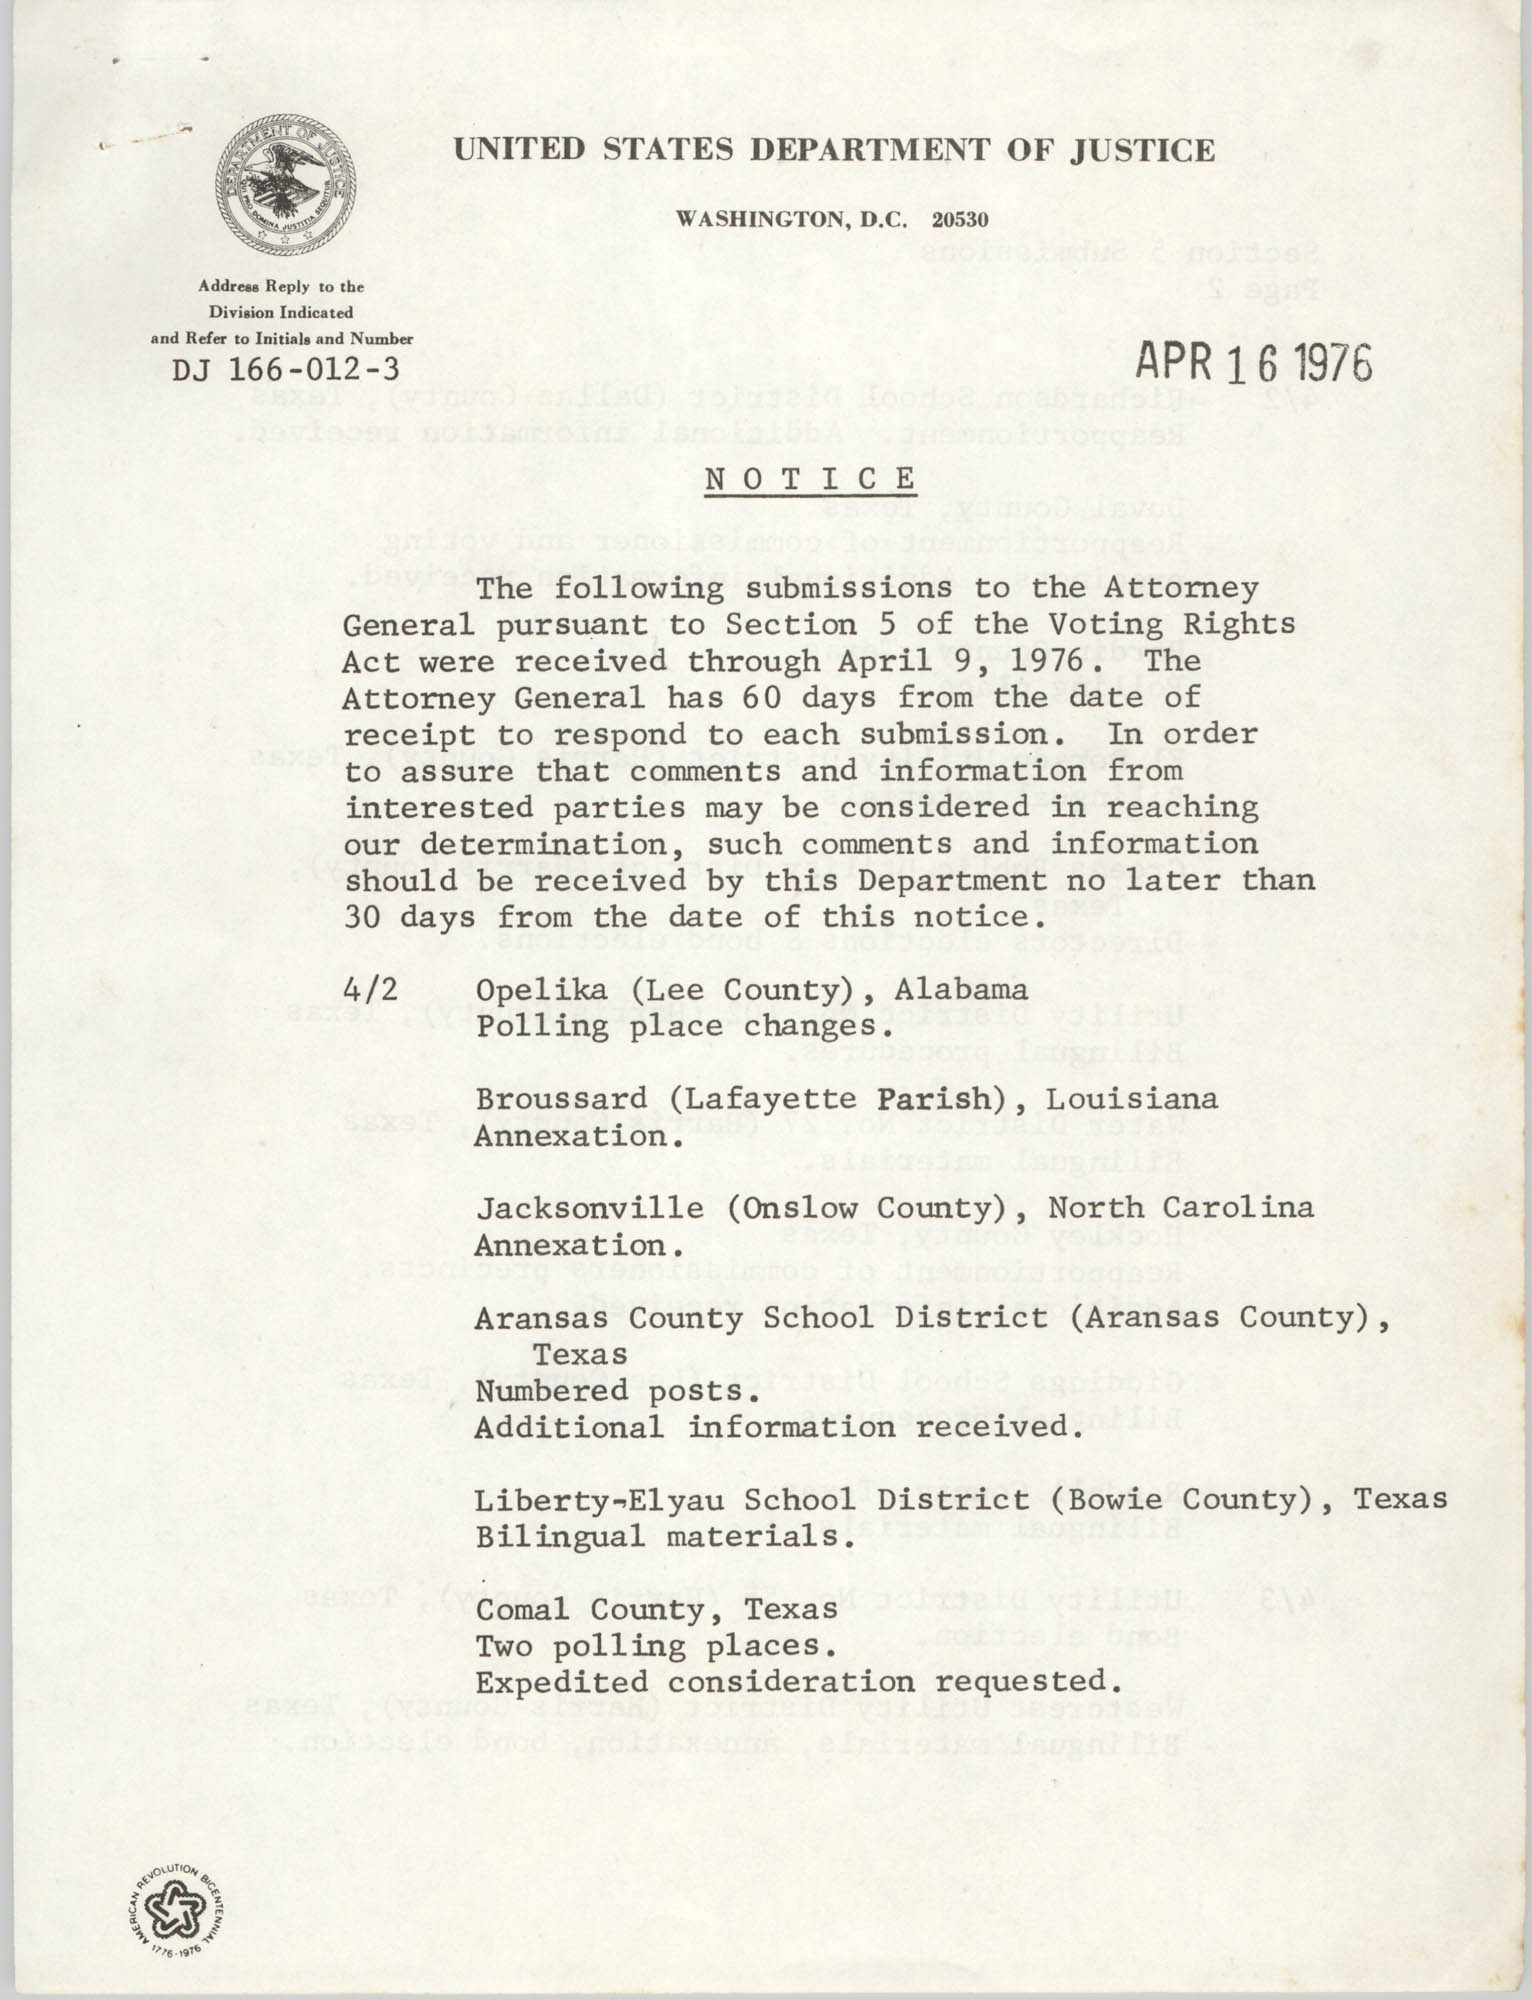 United States Department of Justice Notice, April 16, 1976